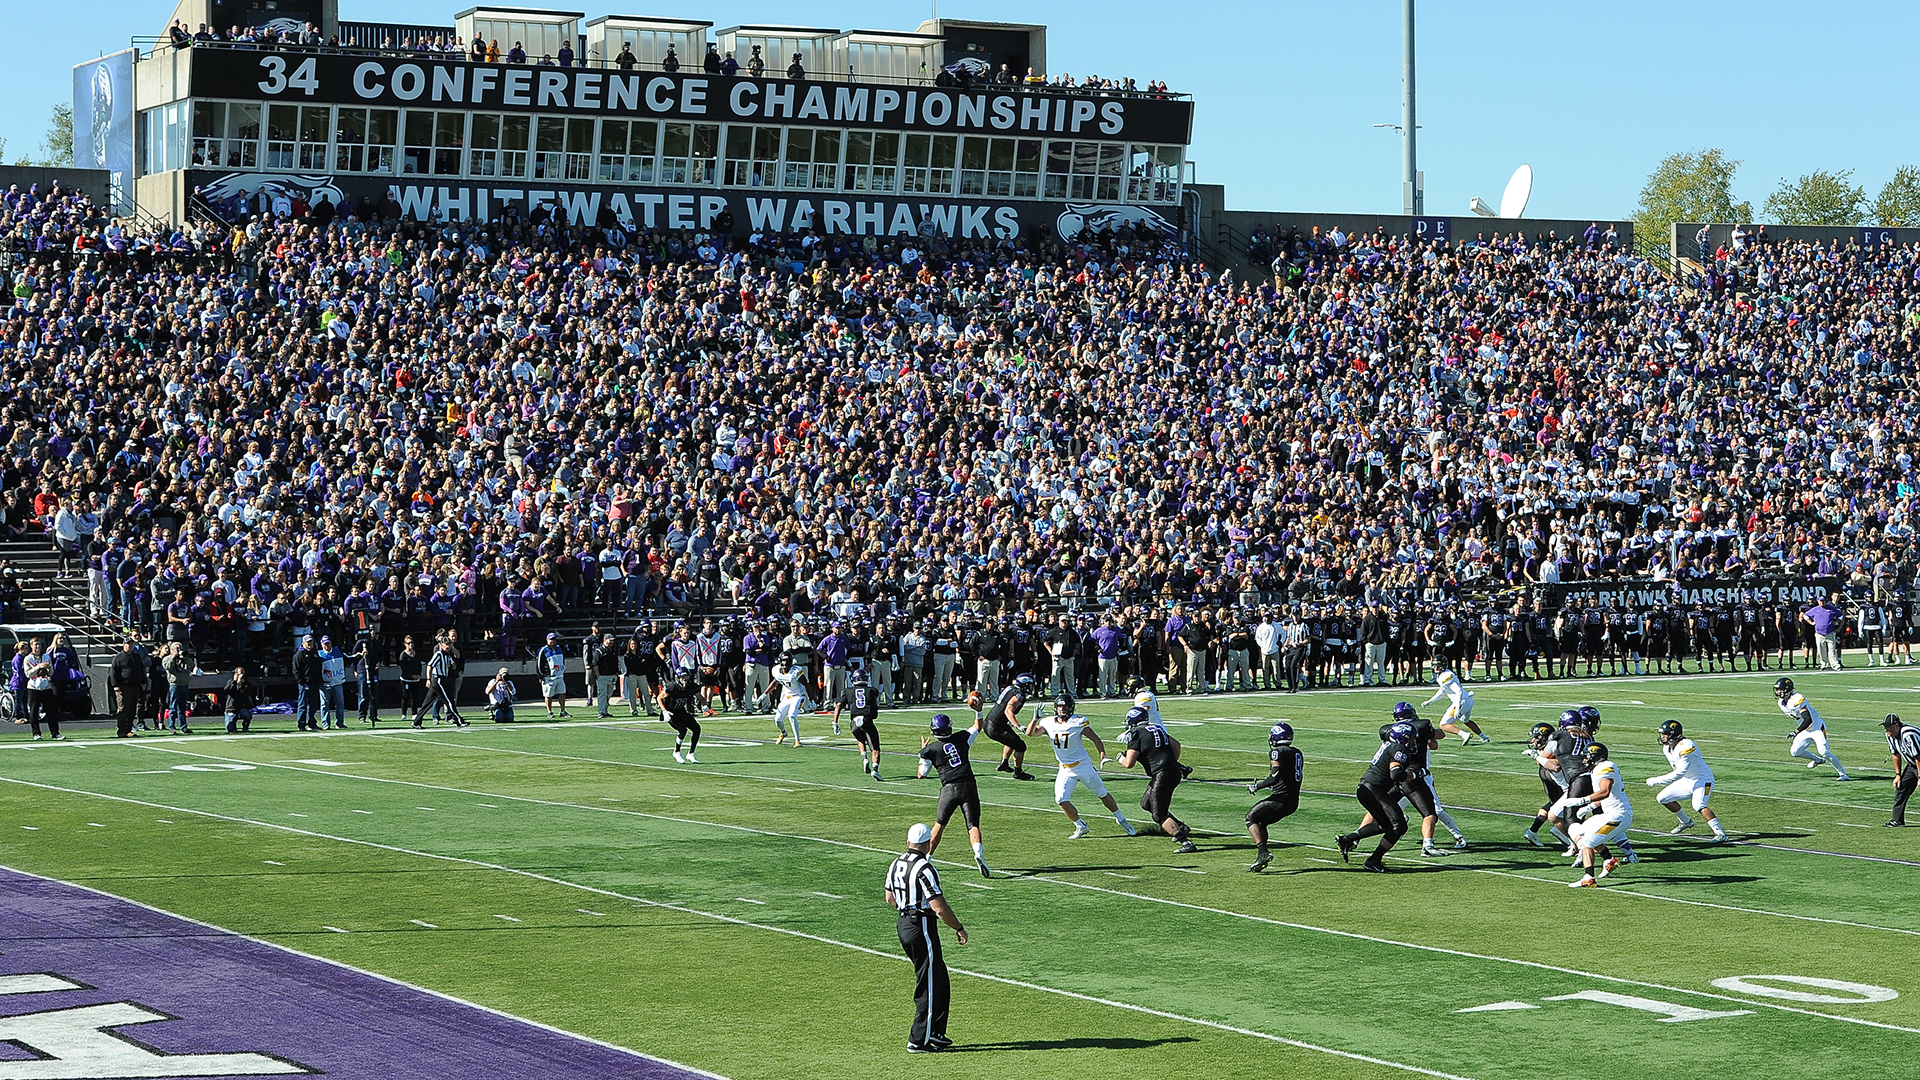 Football crowd Perkins Stadium photo for Oct. 8